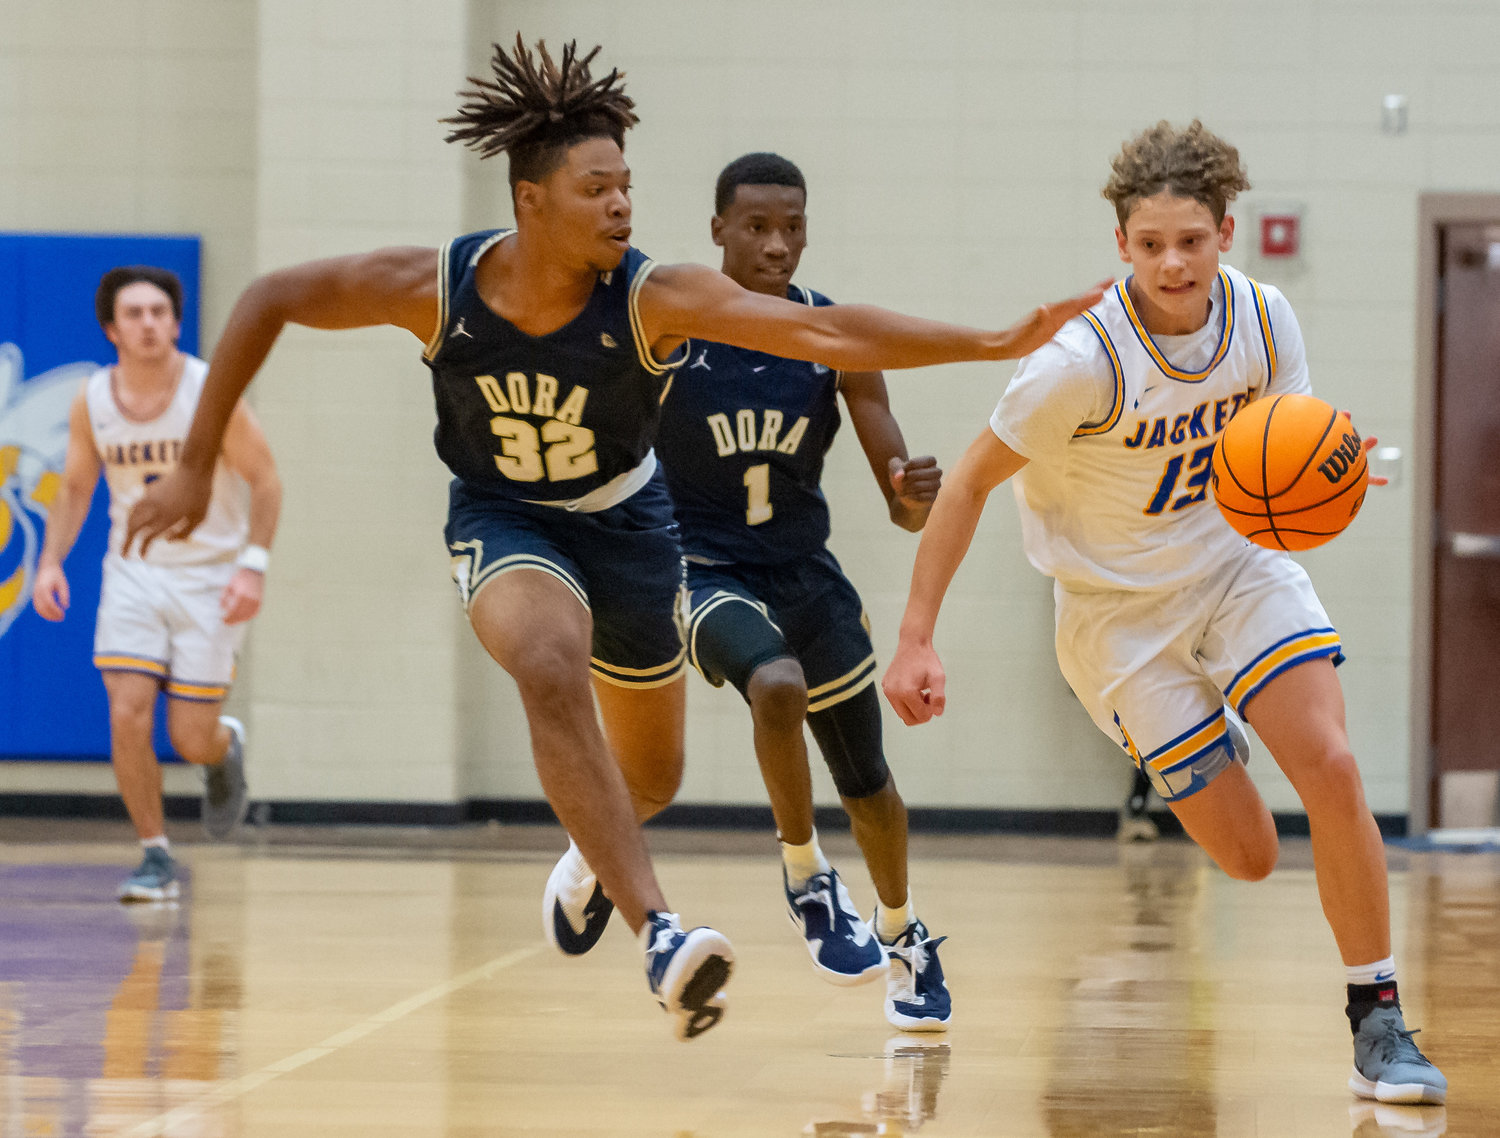 Curry's Jase Calloway (13) brings the ball up the court as Dora's Michael Smoot (32) and Malique Davis (1) defend during their game on Monday night at Curry High School. Curry won 77-61.